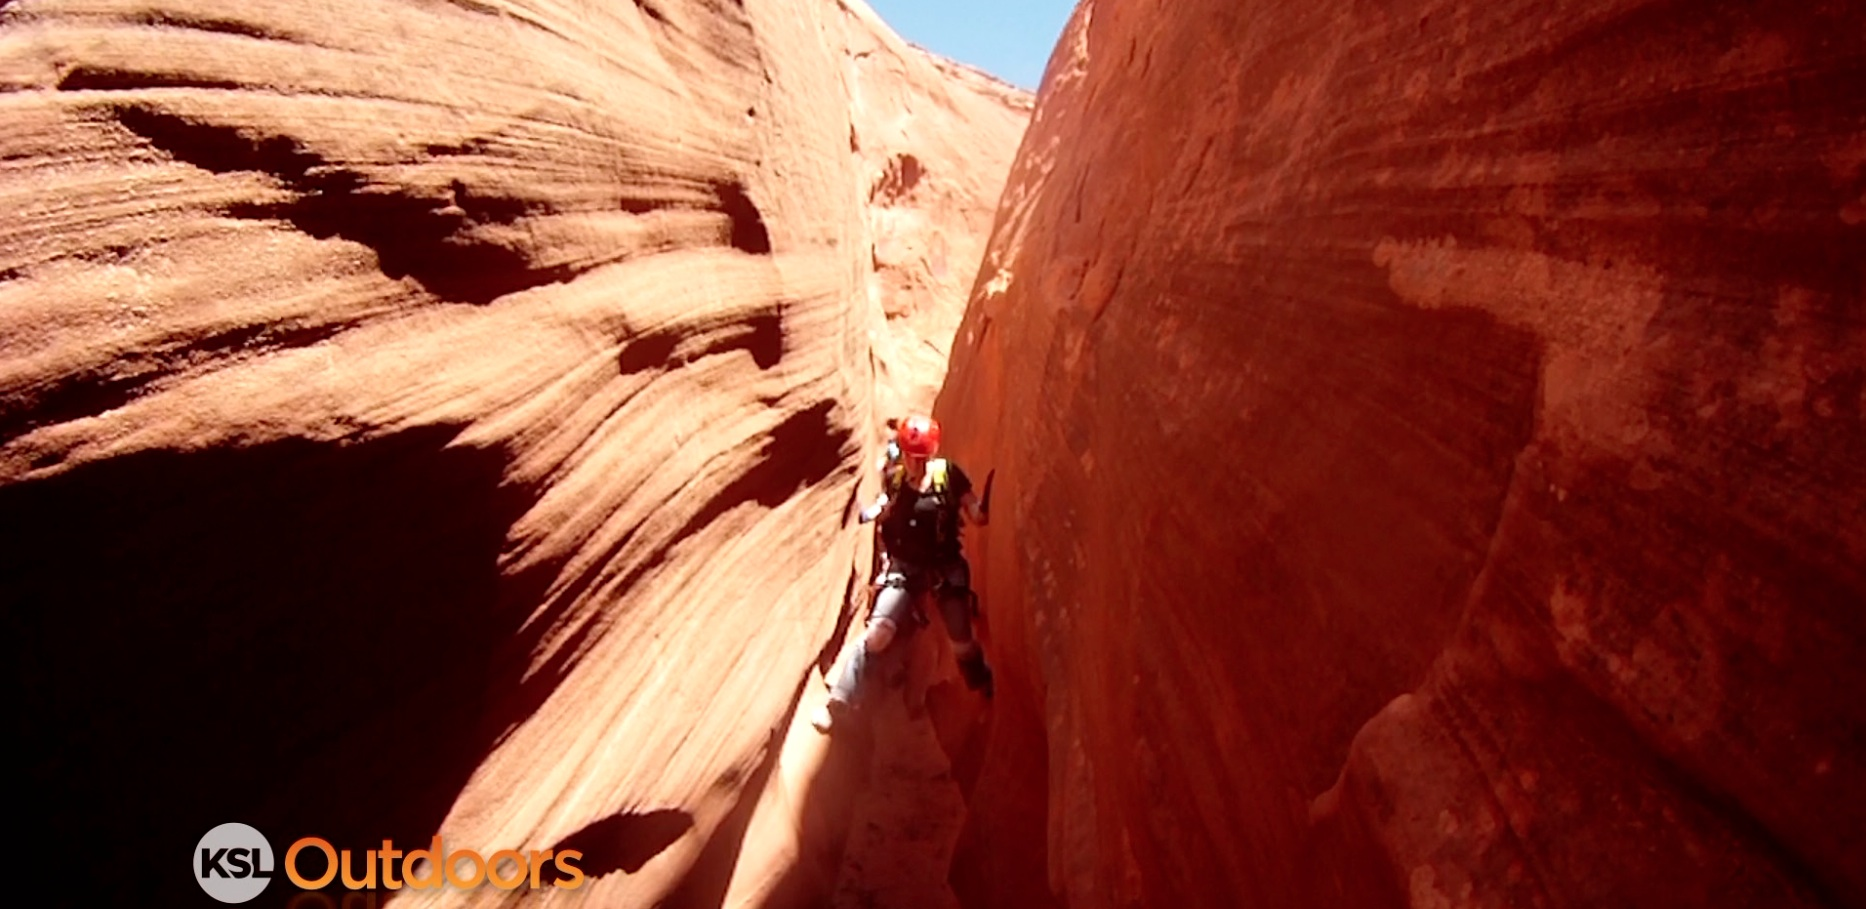 Screen grab from an episode of KSL Outdoors featuring canyoneering in Leprechaun Canyon.